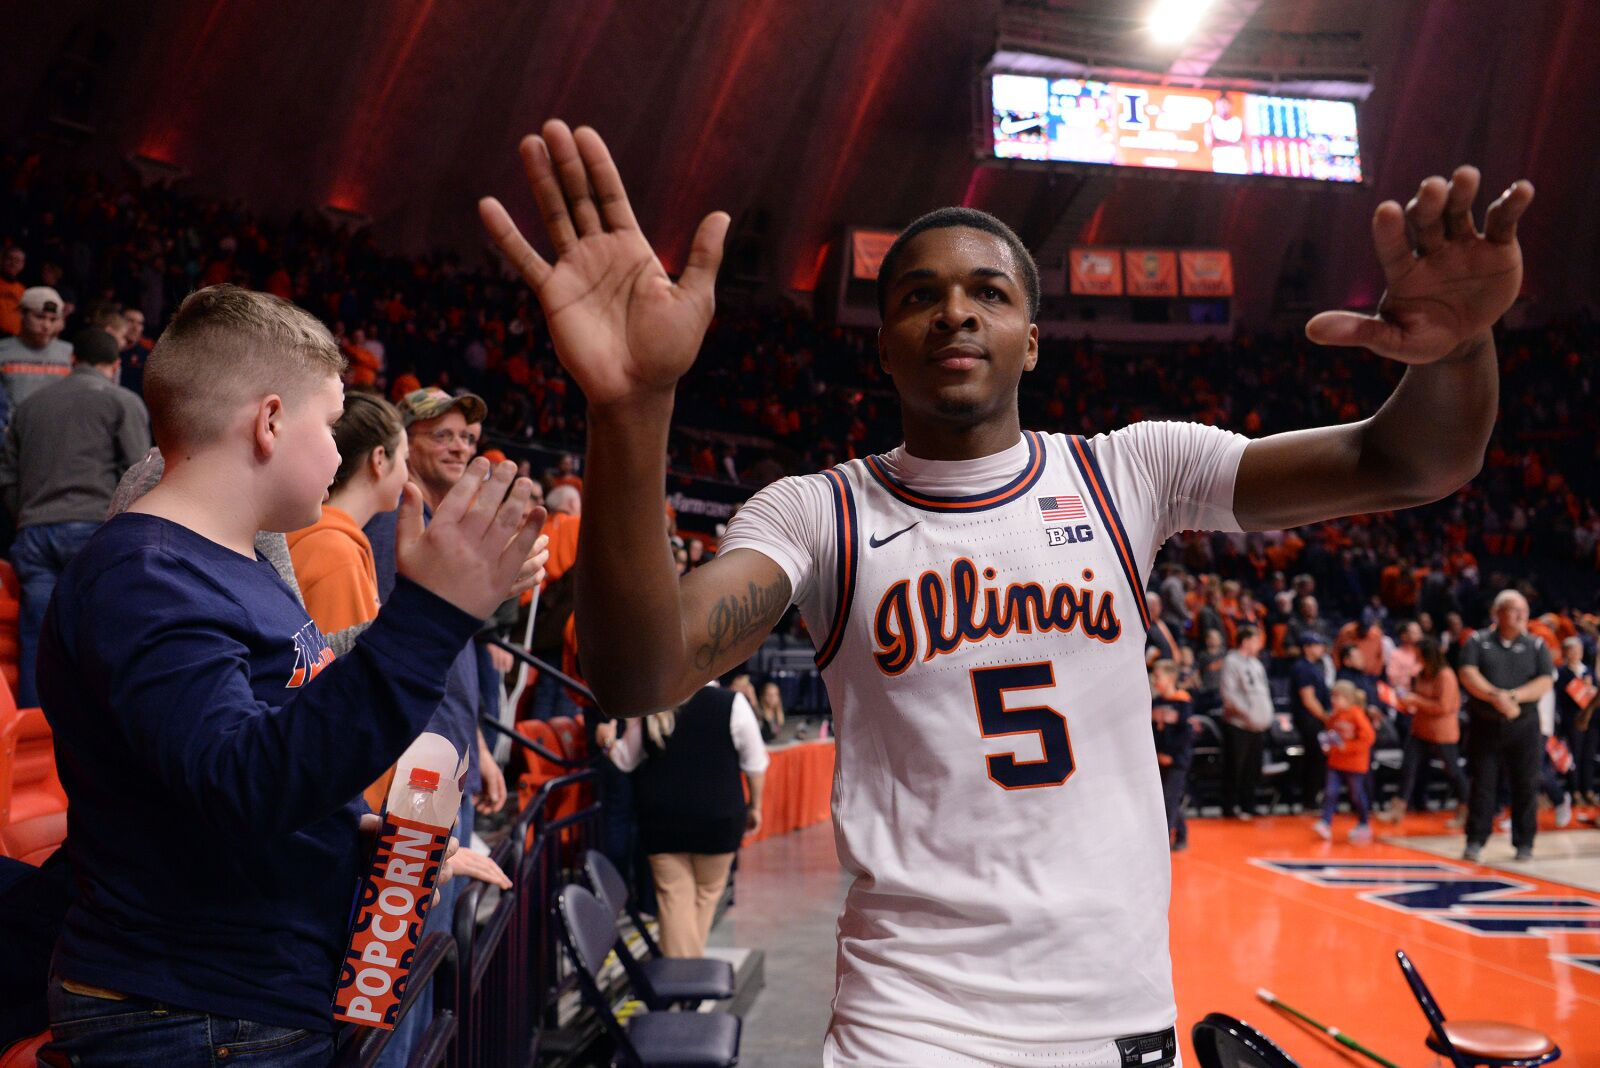 Illinois basketball: The last chance for Tevian Jones to earn minutes